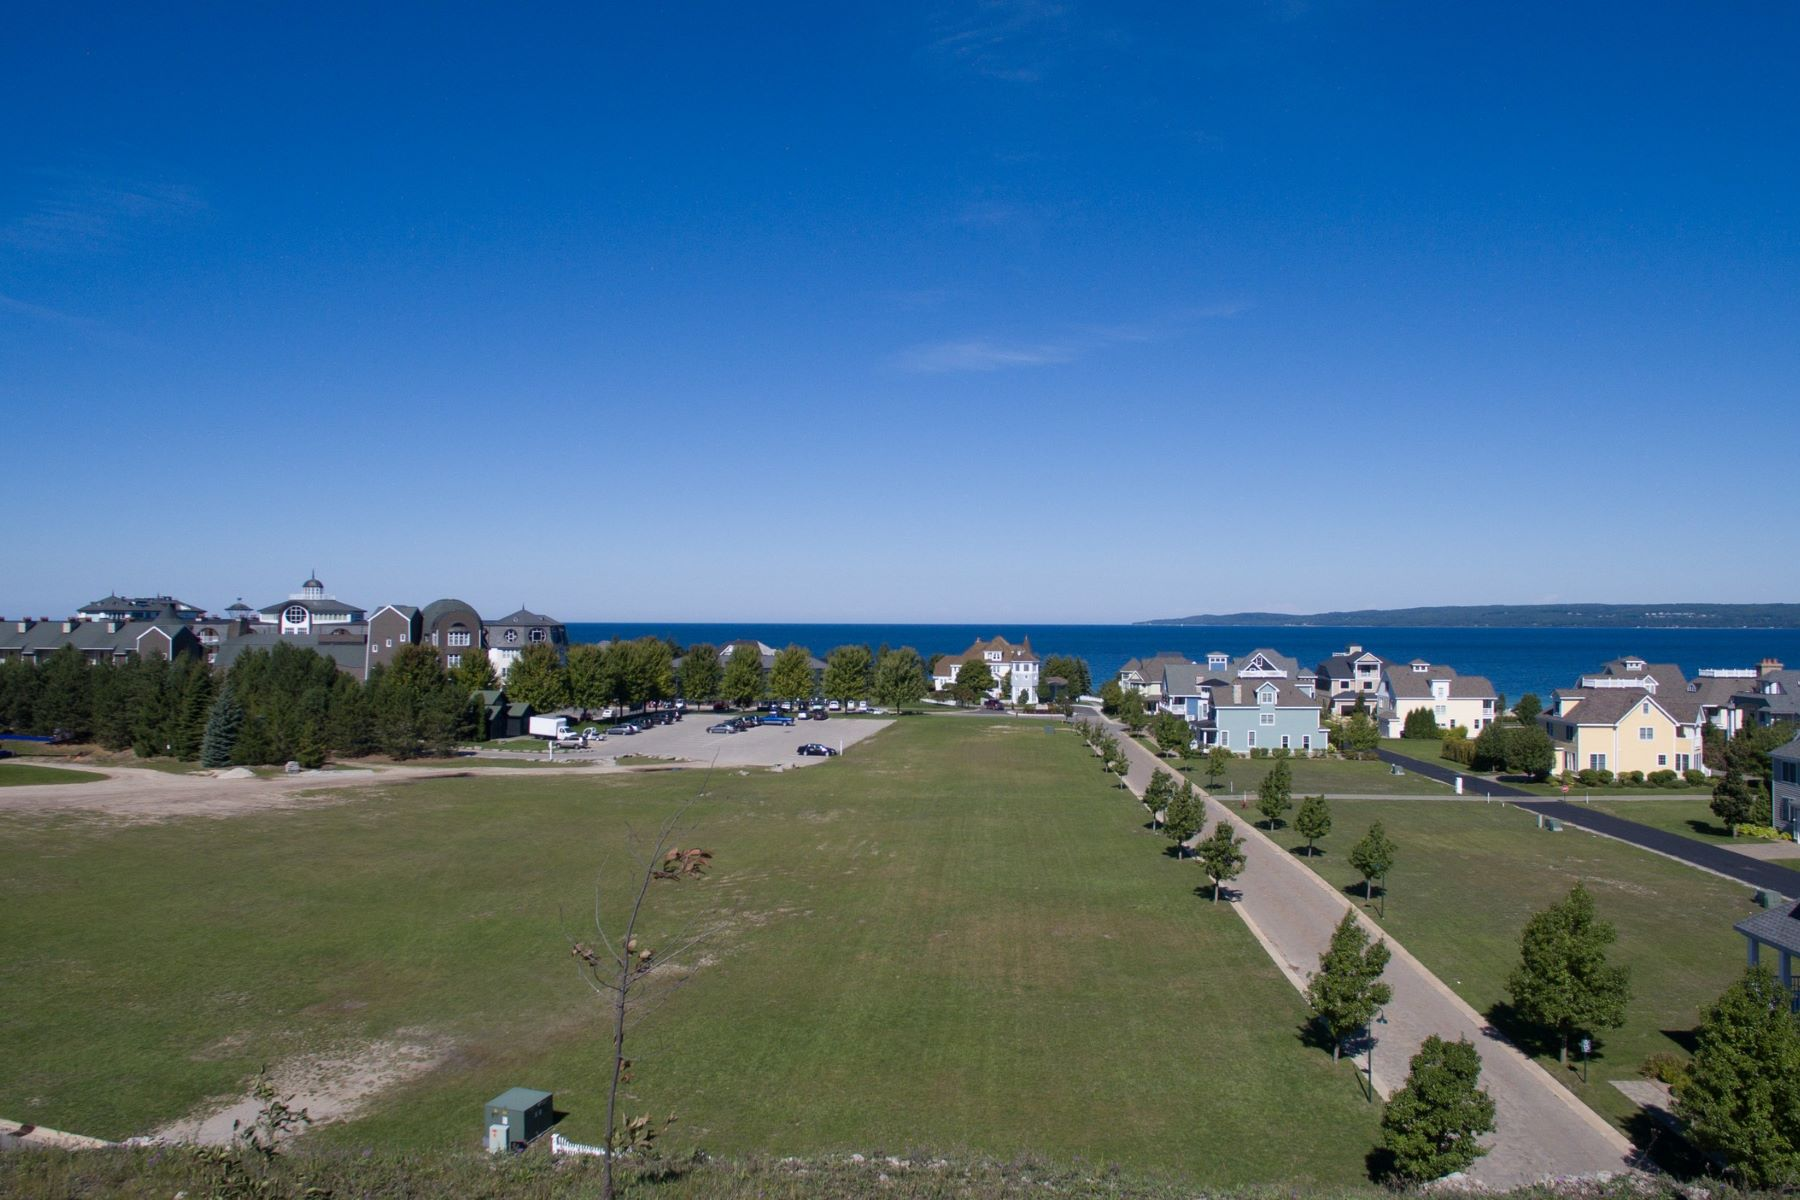 Land for Sale at Unit 6, The Ridge TBD Cliffs Drive, Unit 6, The Ridge Bay Harbor, Michigan, 49770 United States